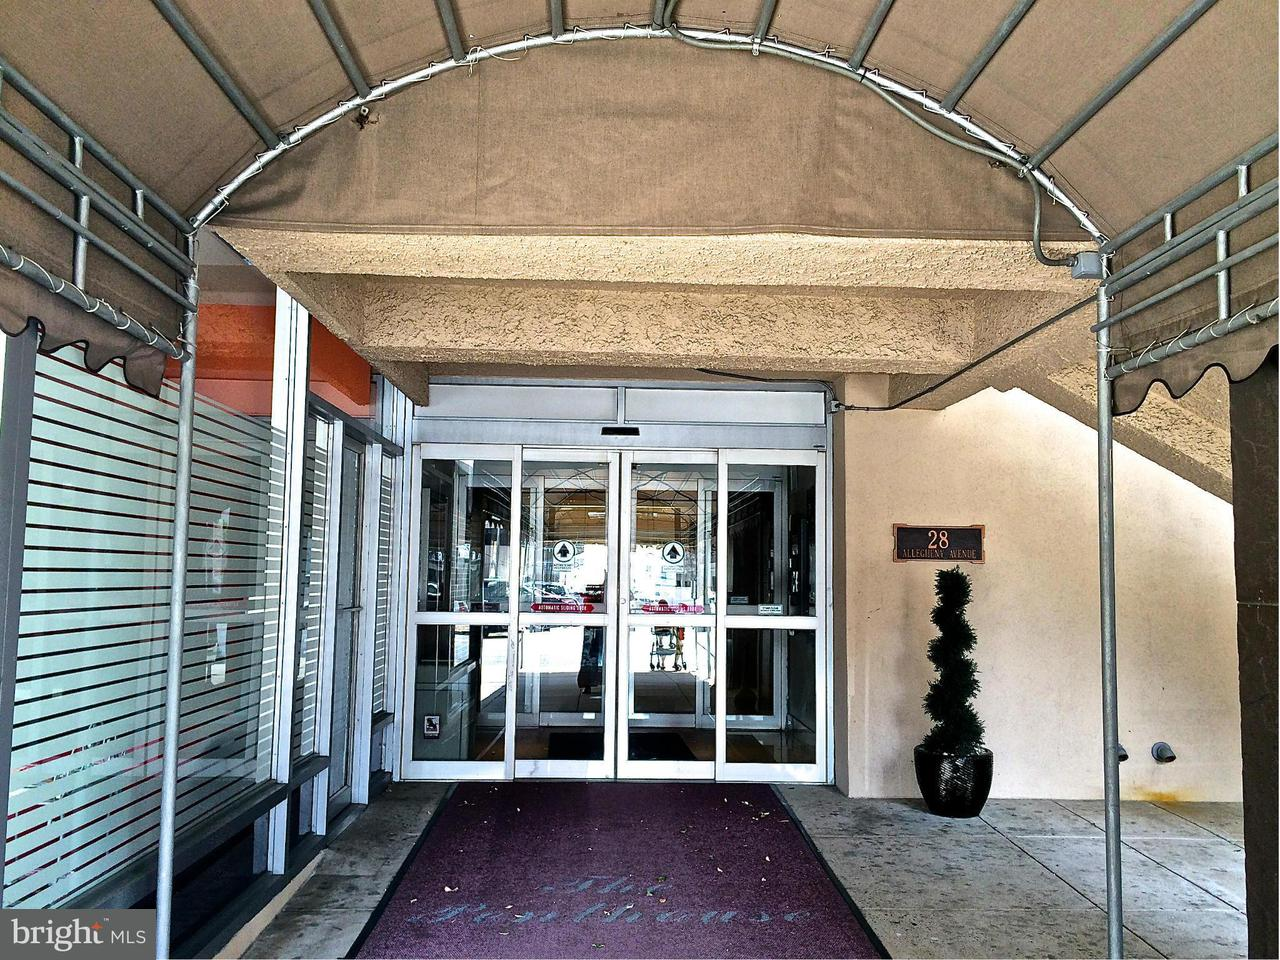 Additional photo for property listing at 28 Allegheny Ave #2700  Towson, Maryland 21204 United States